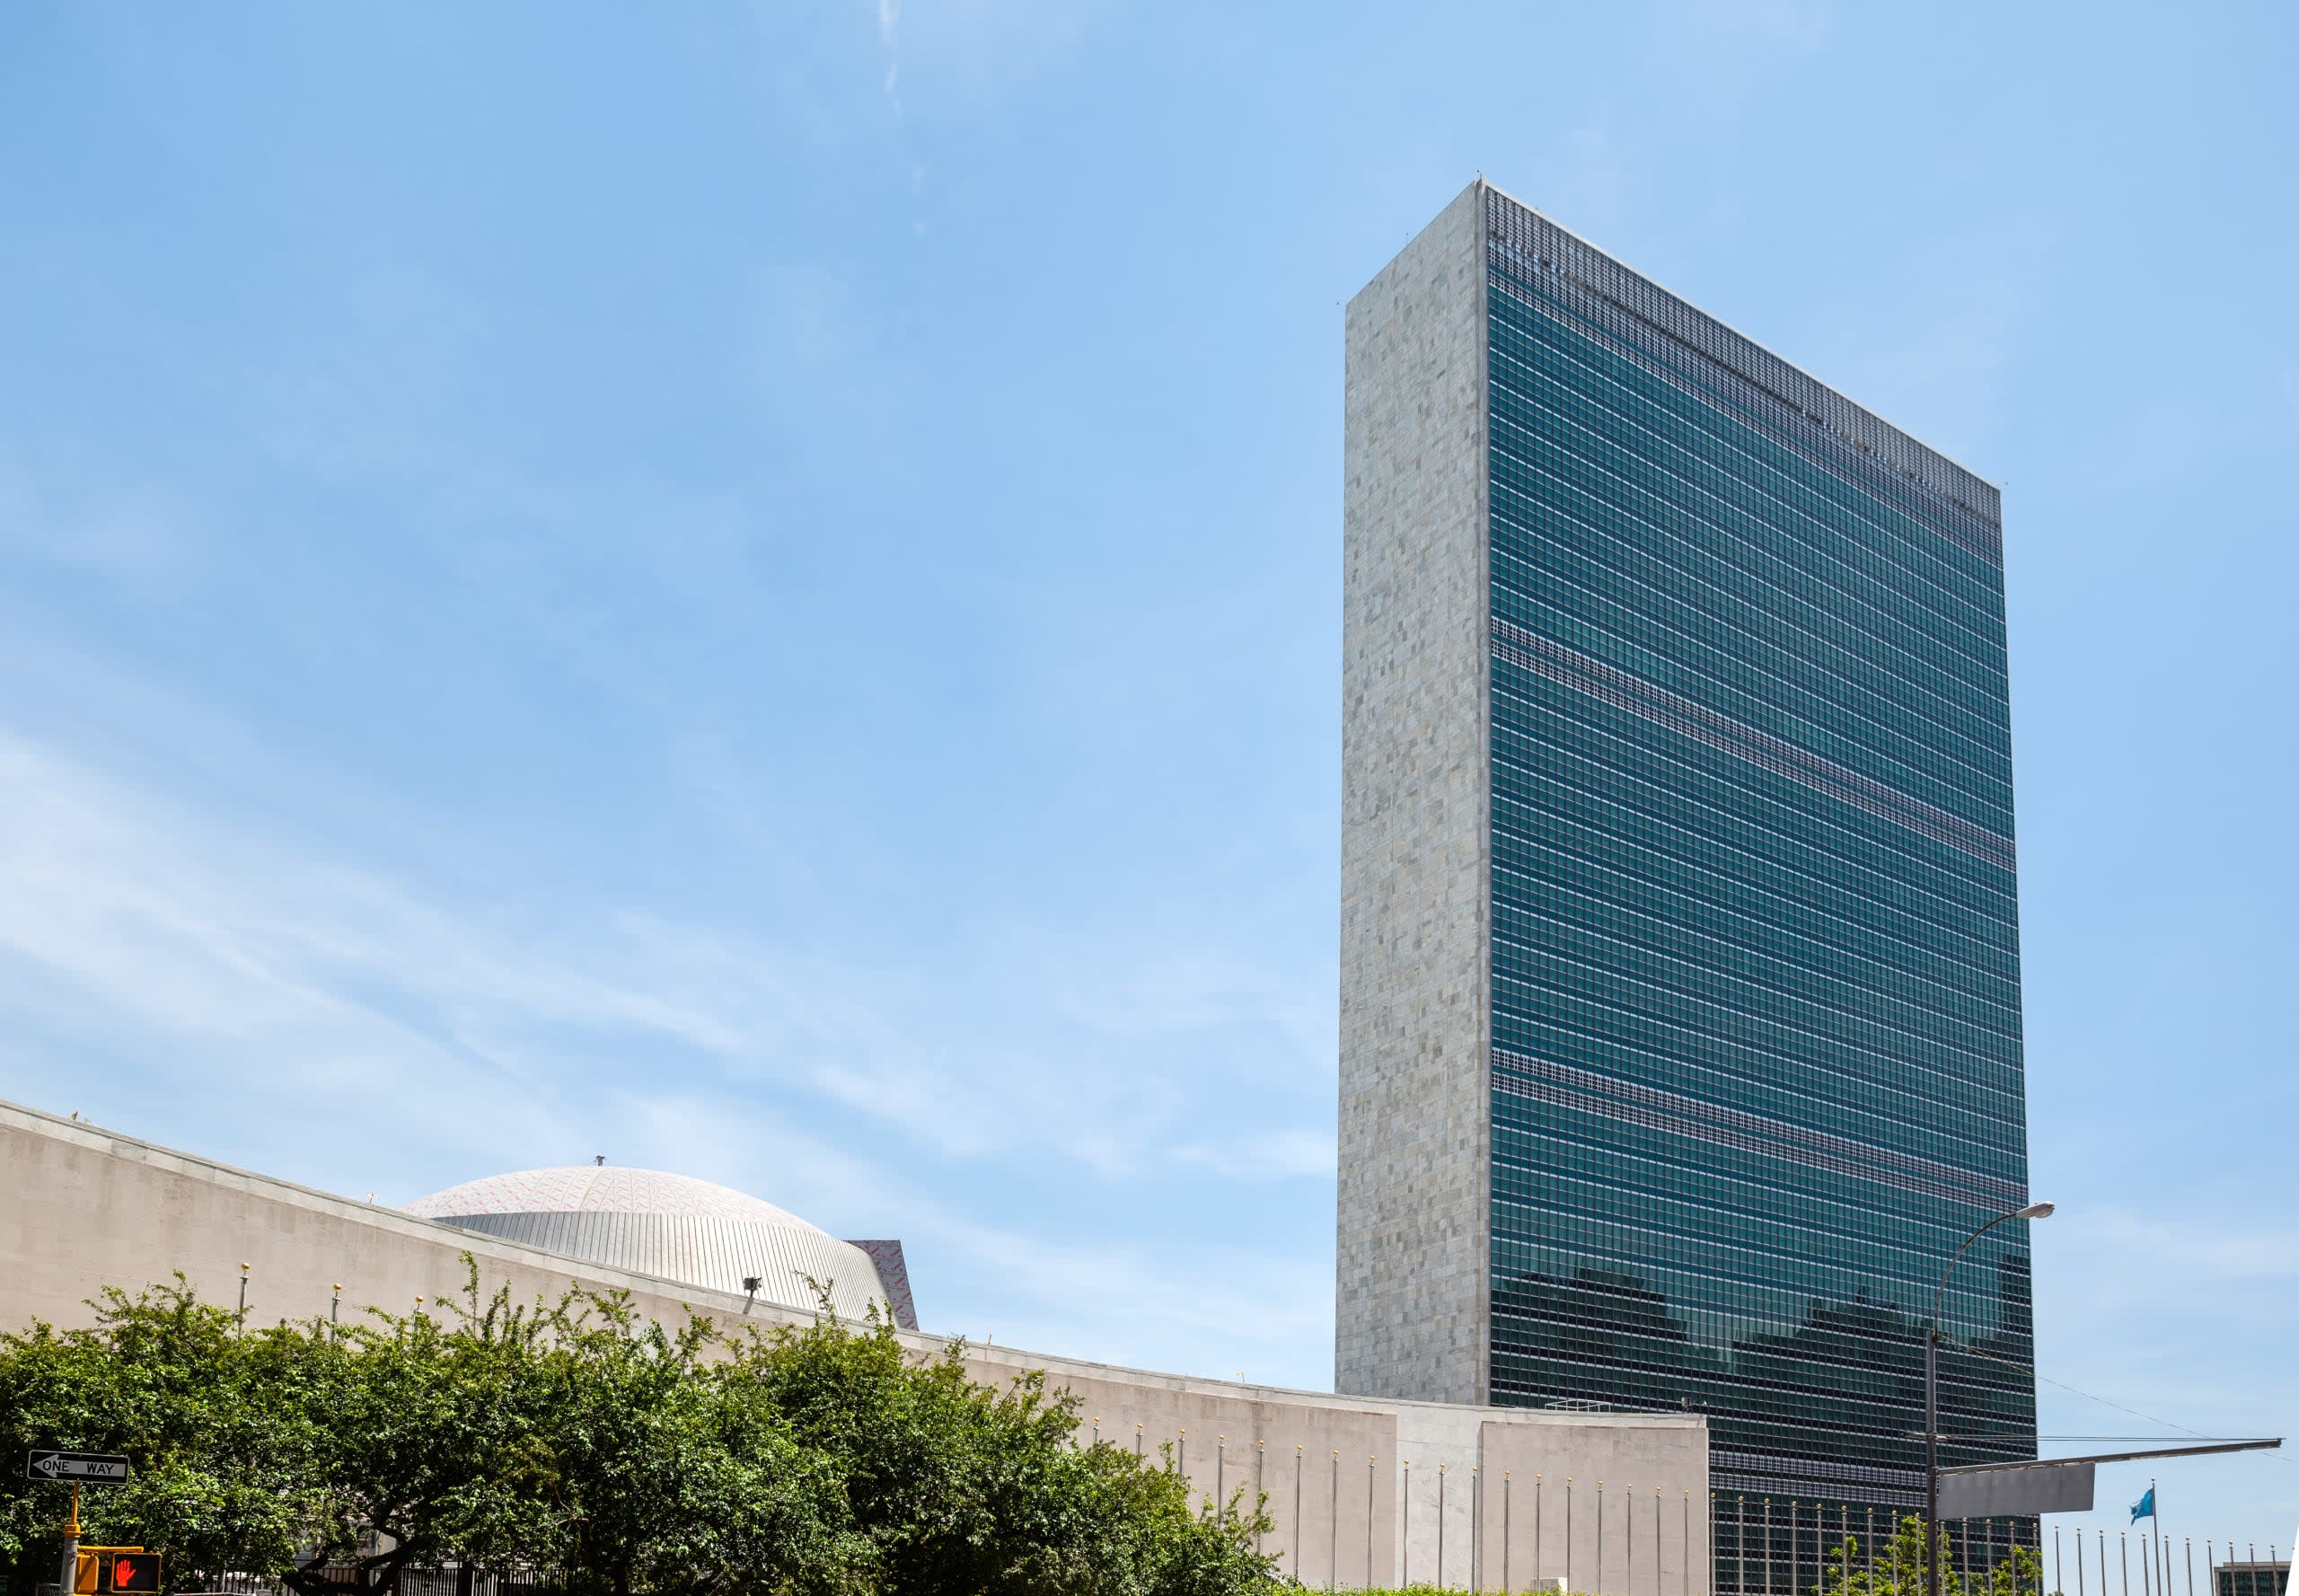 united-nations-building-new-york-is-headquarters-united-nations-organization2